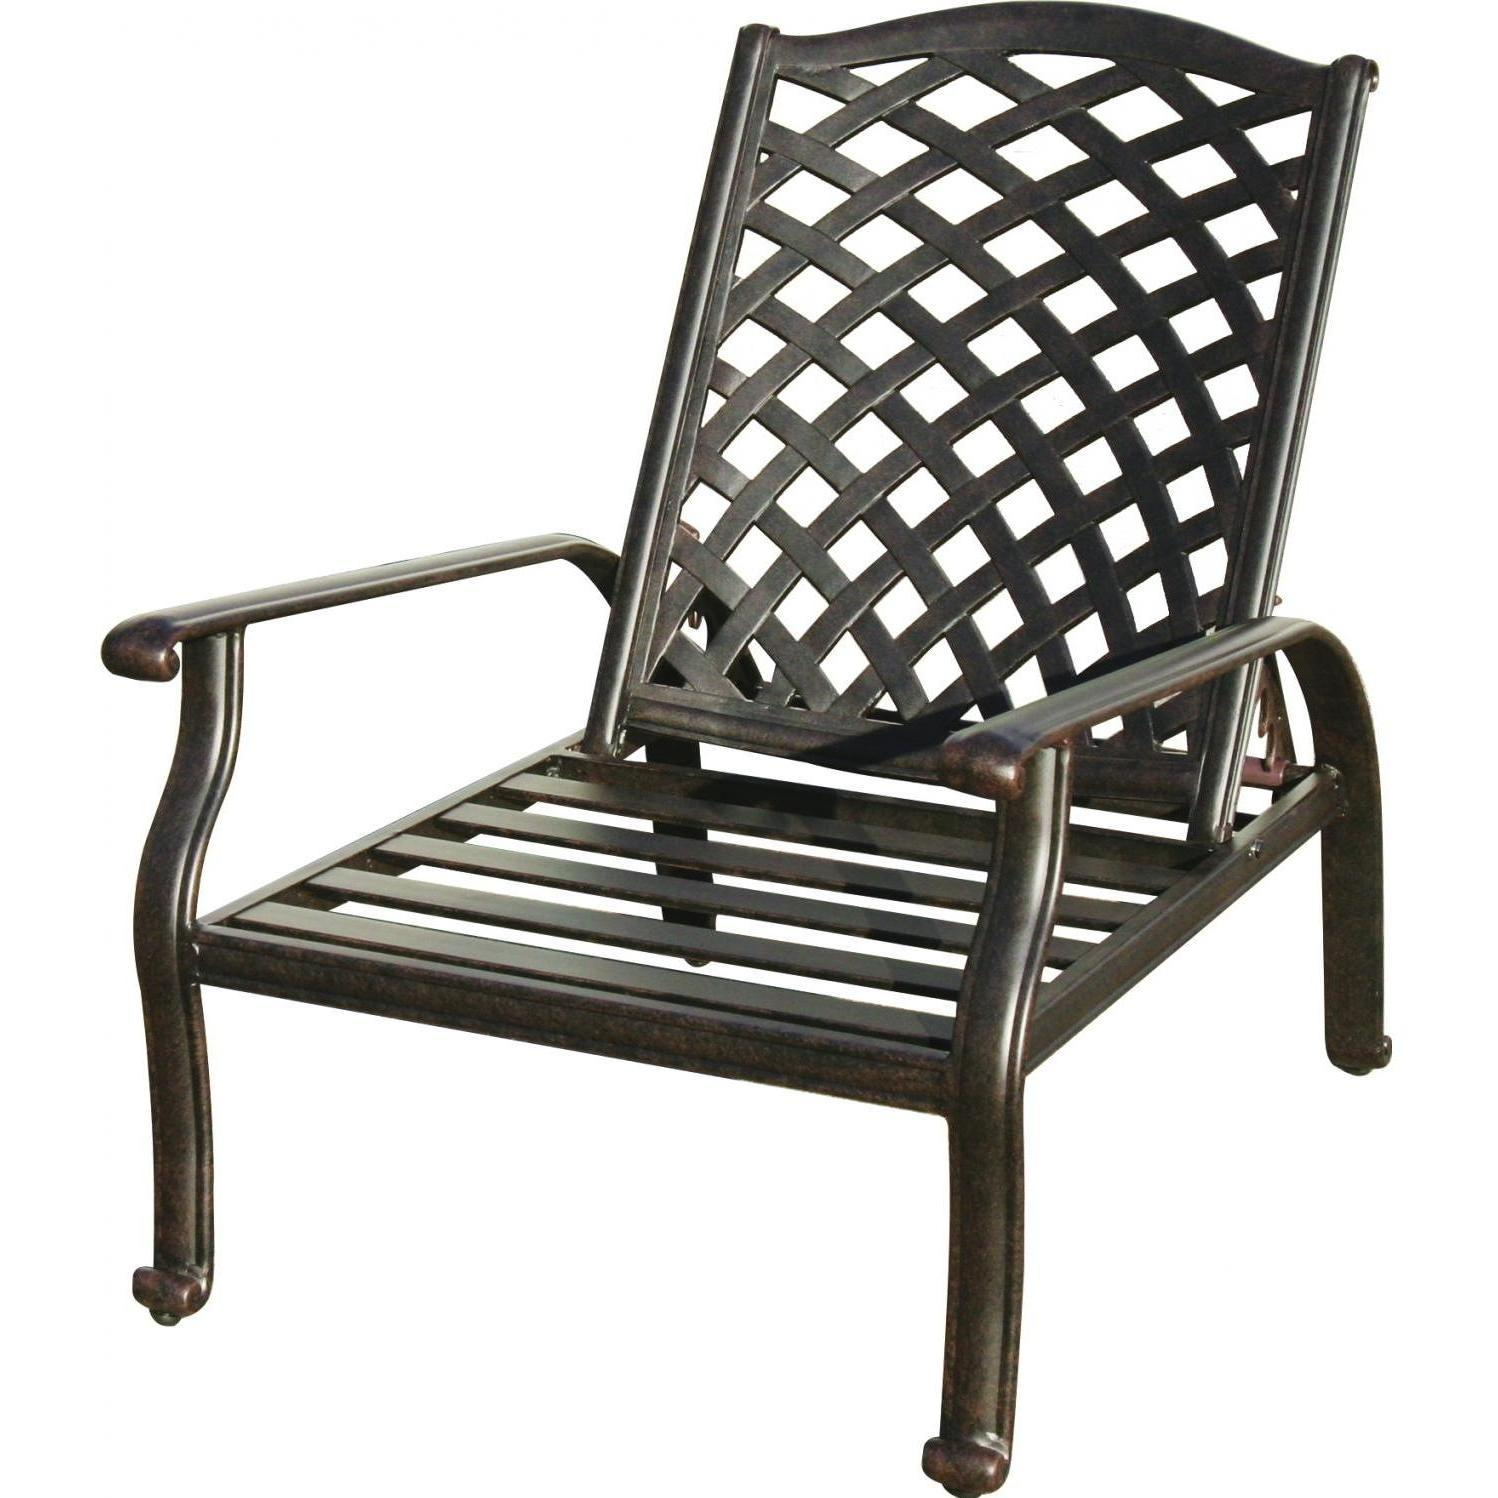 reclining patio chair fcbfcbcedaae